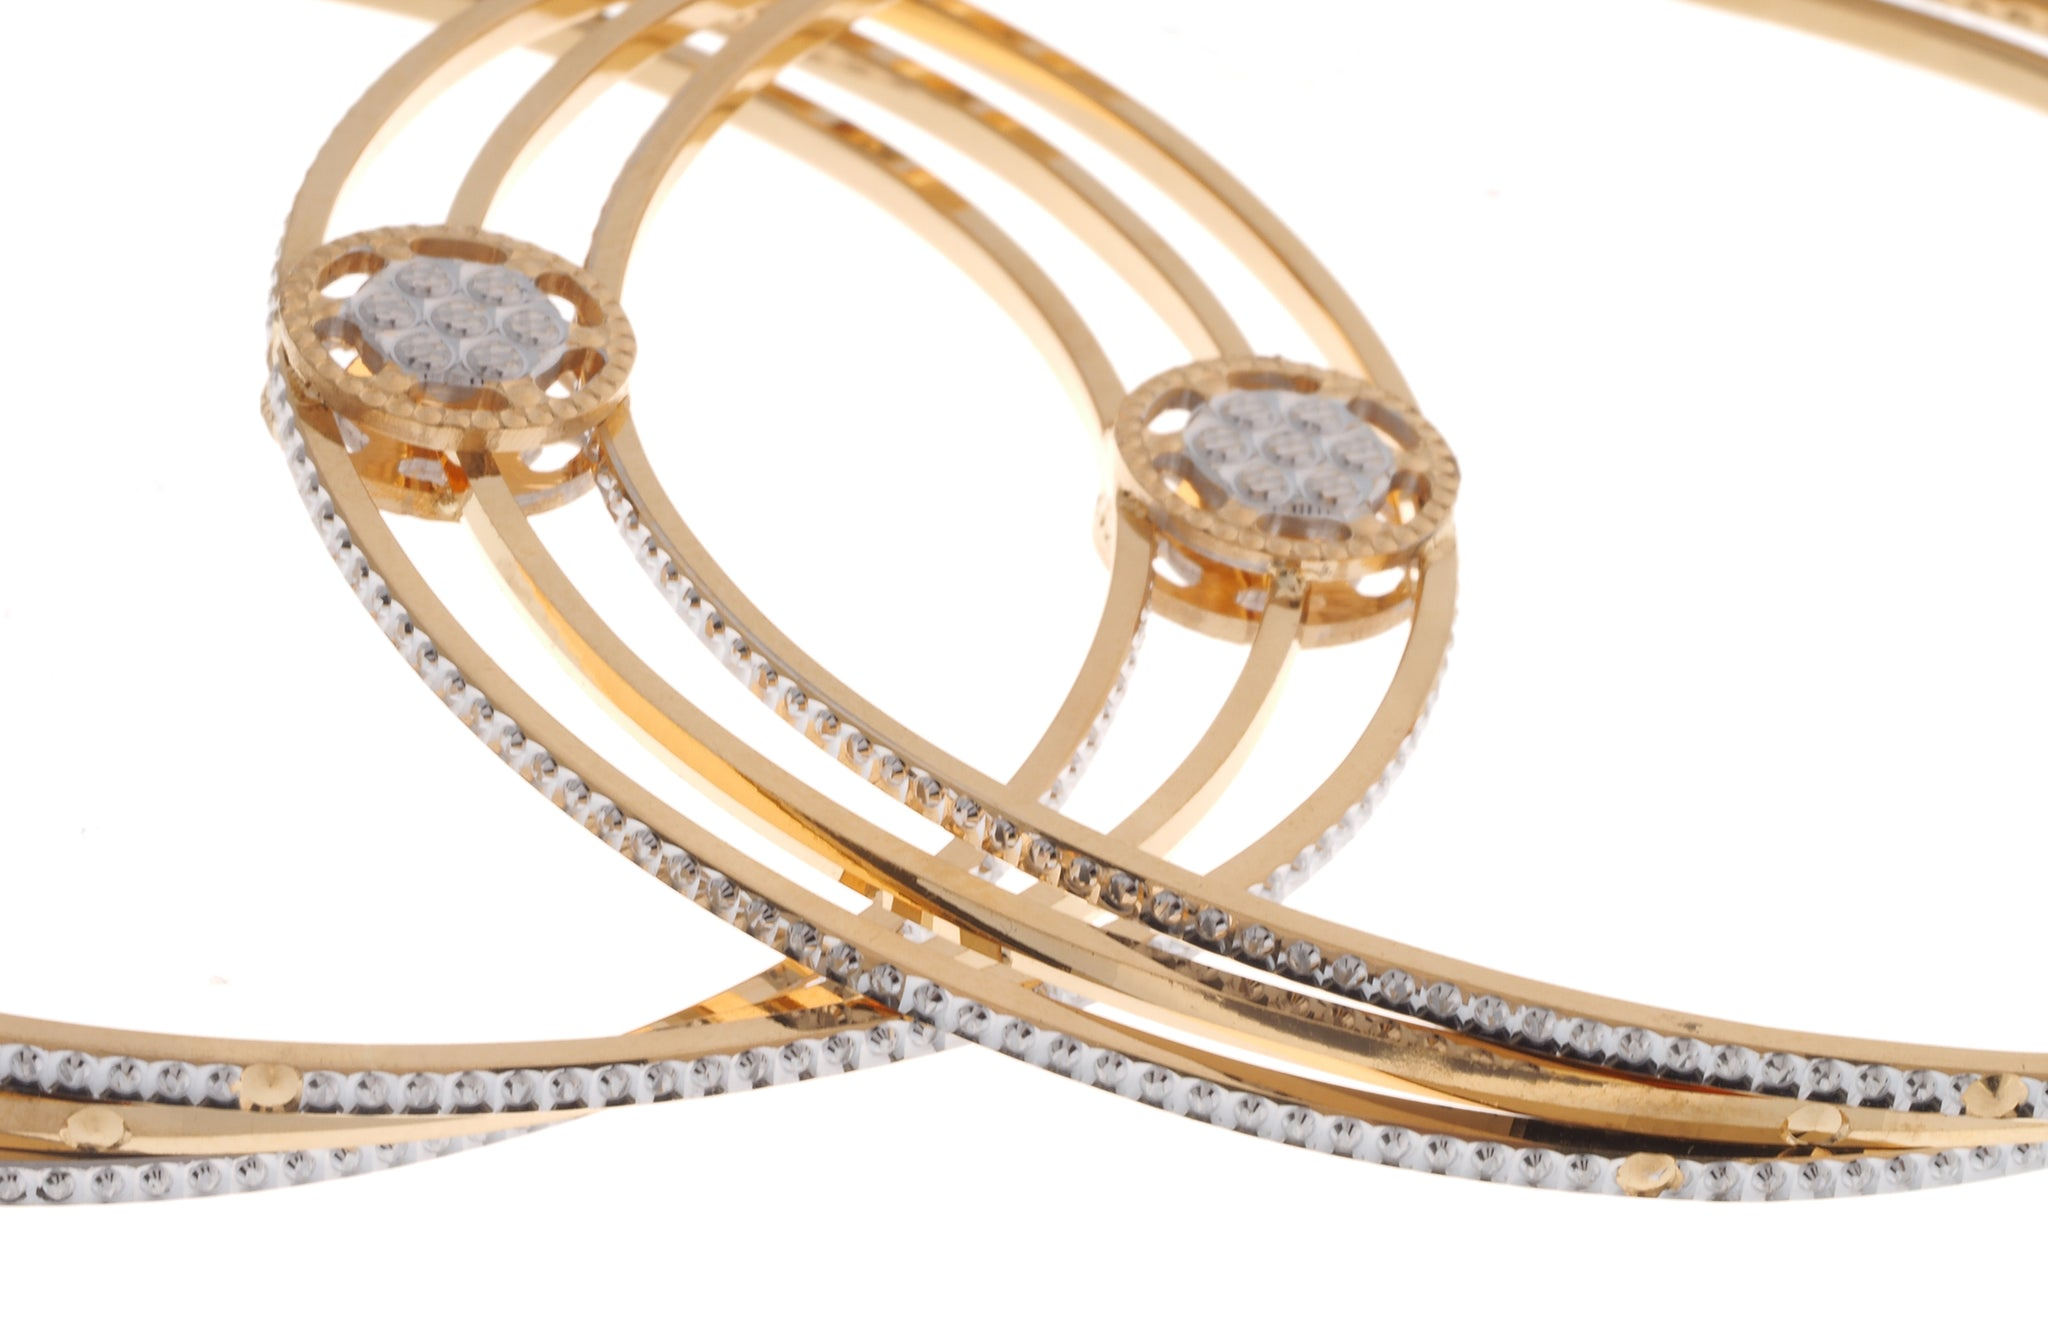 22ct Gold Bangle with Rhodium Design B-6929